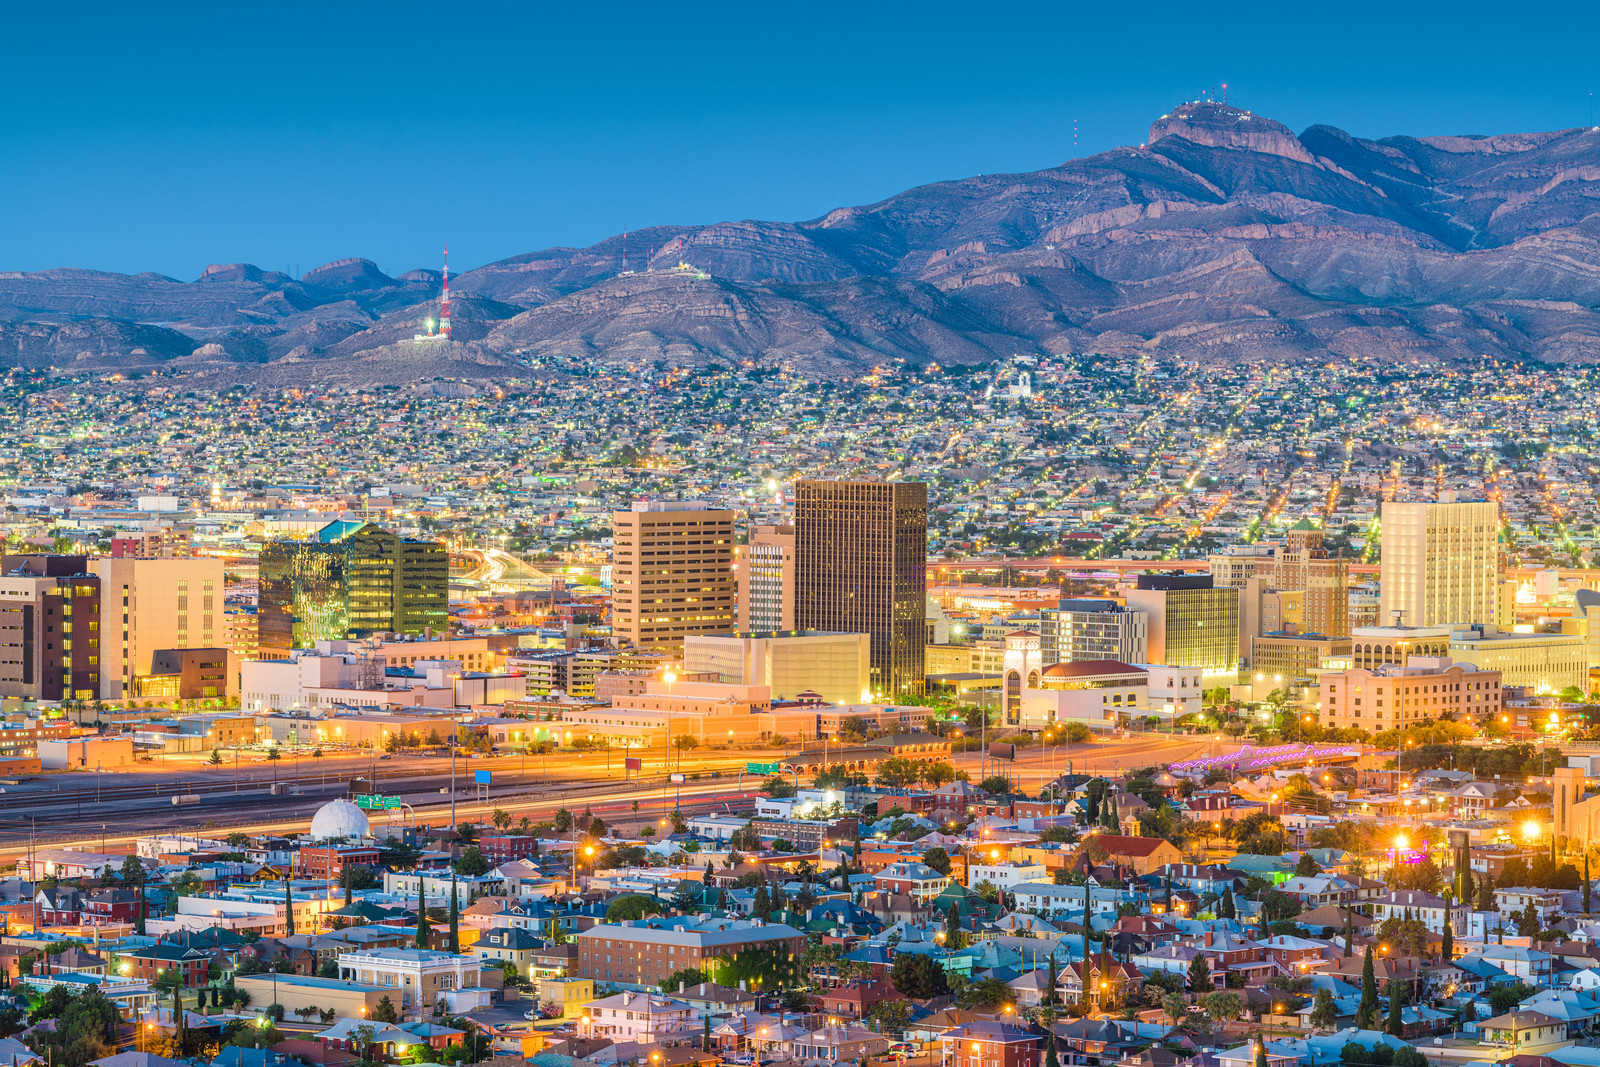 El Paso at night with mountain back drop